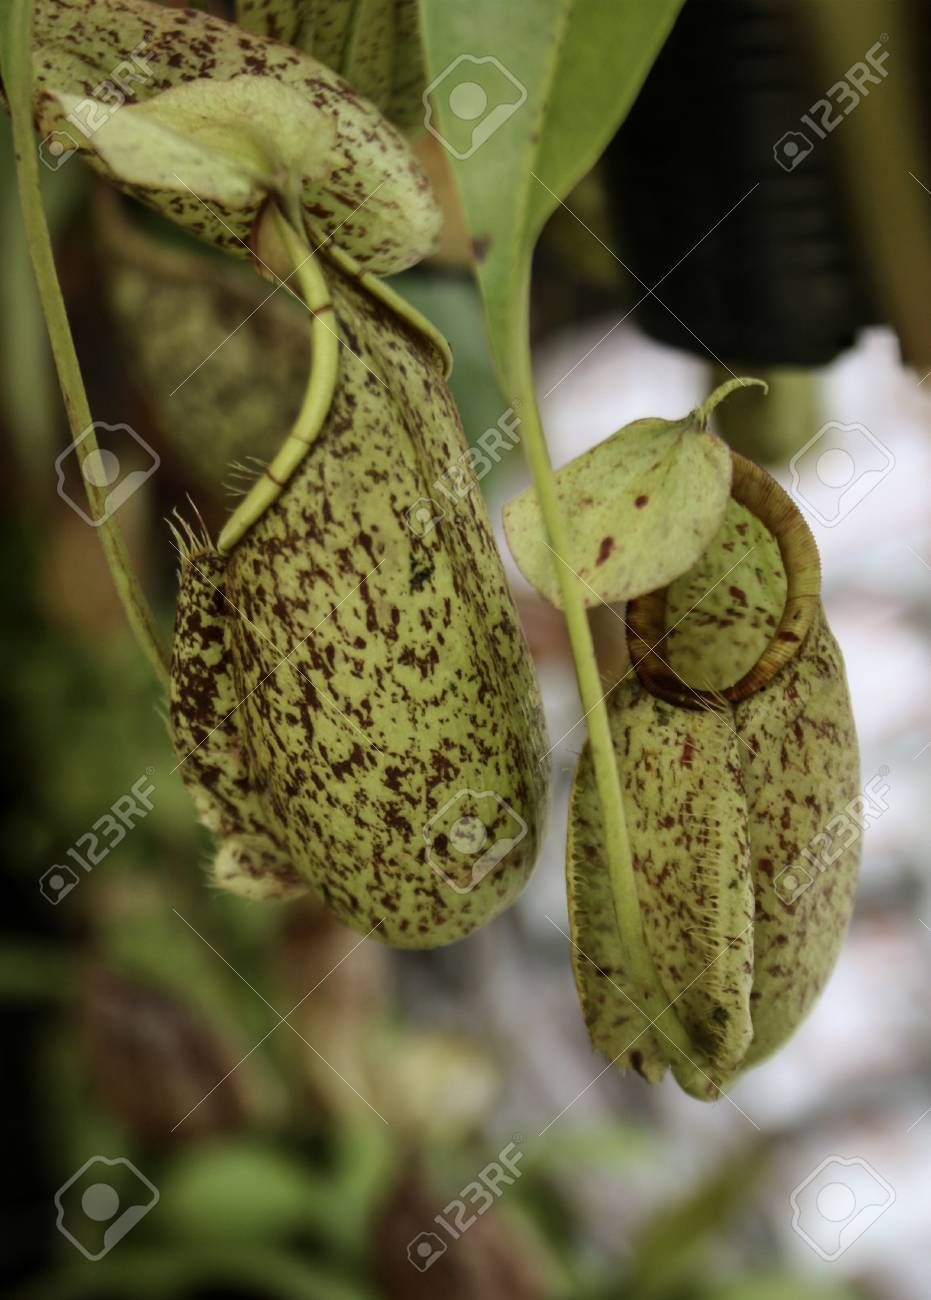 Best Closeup of nepenthes with blurred Wallpapers 8 Images 931x1300